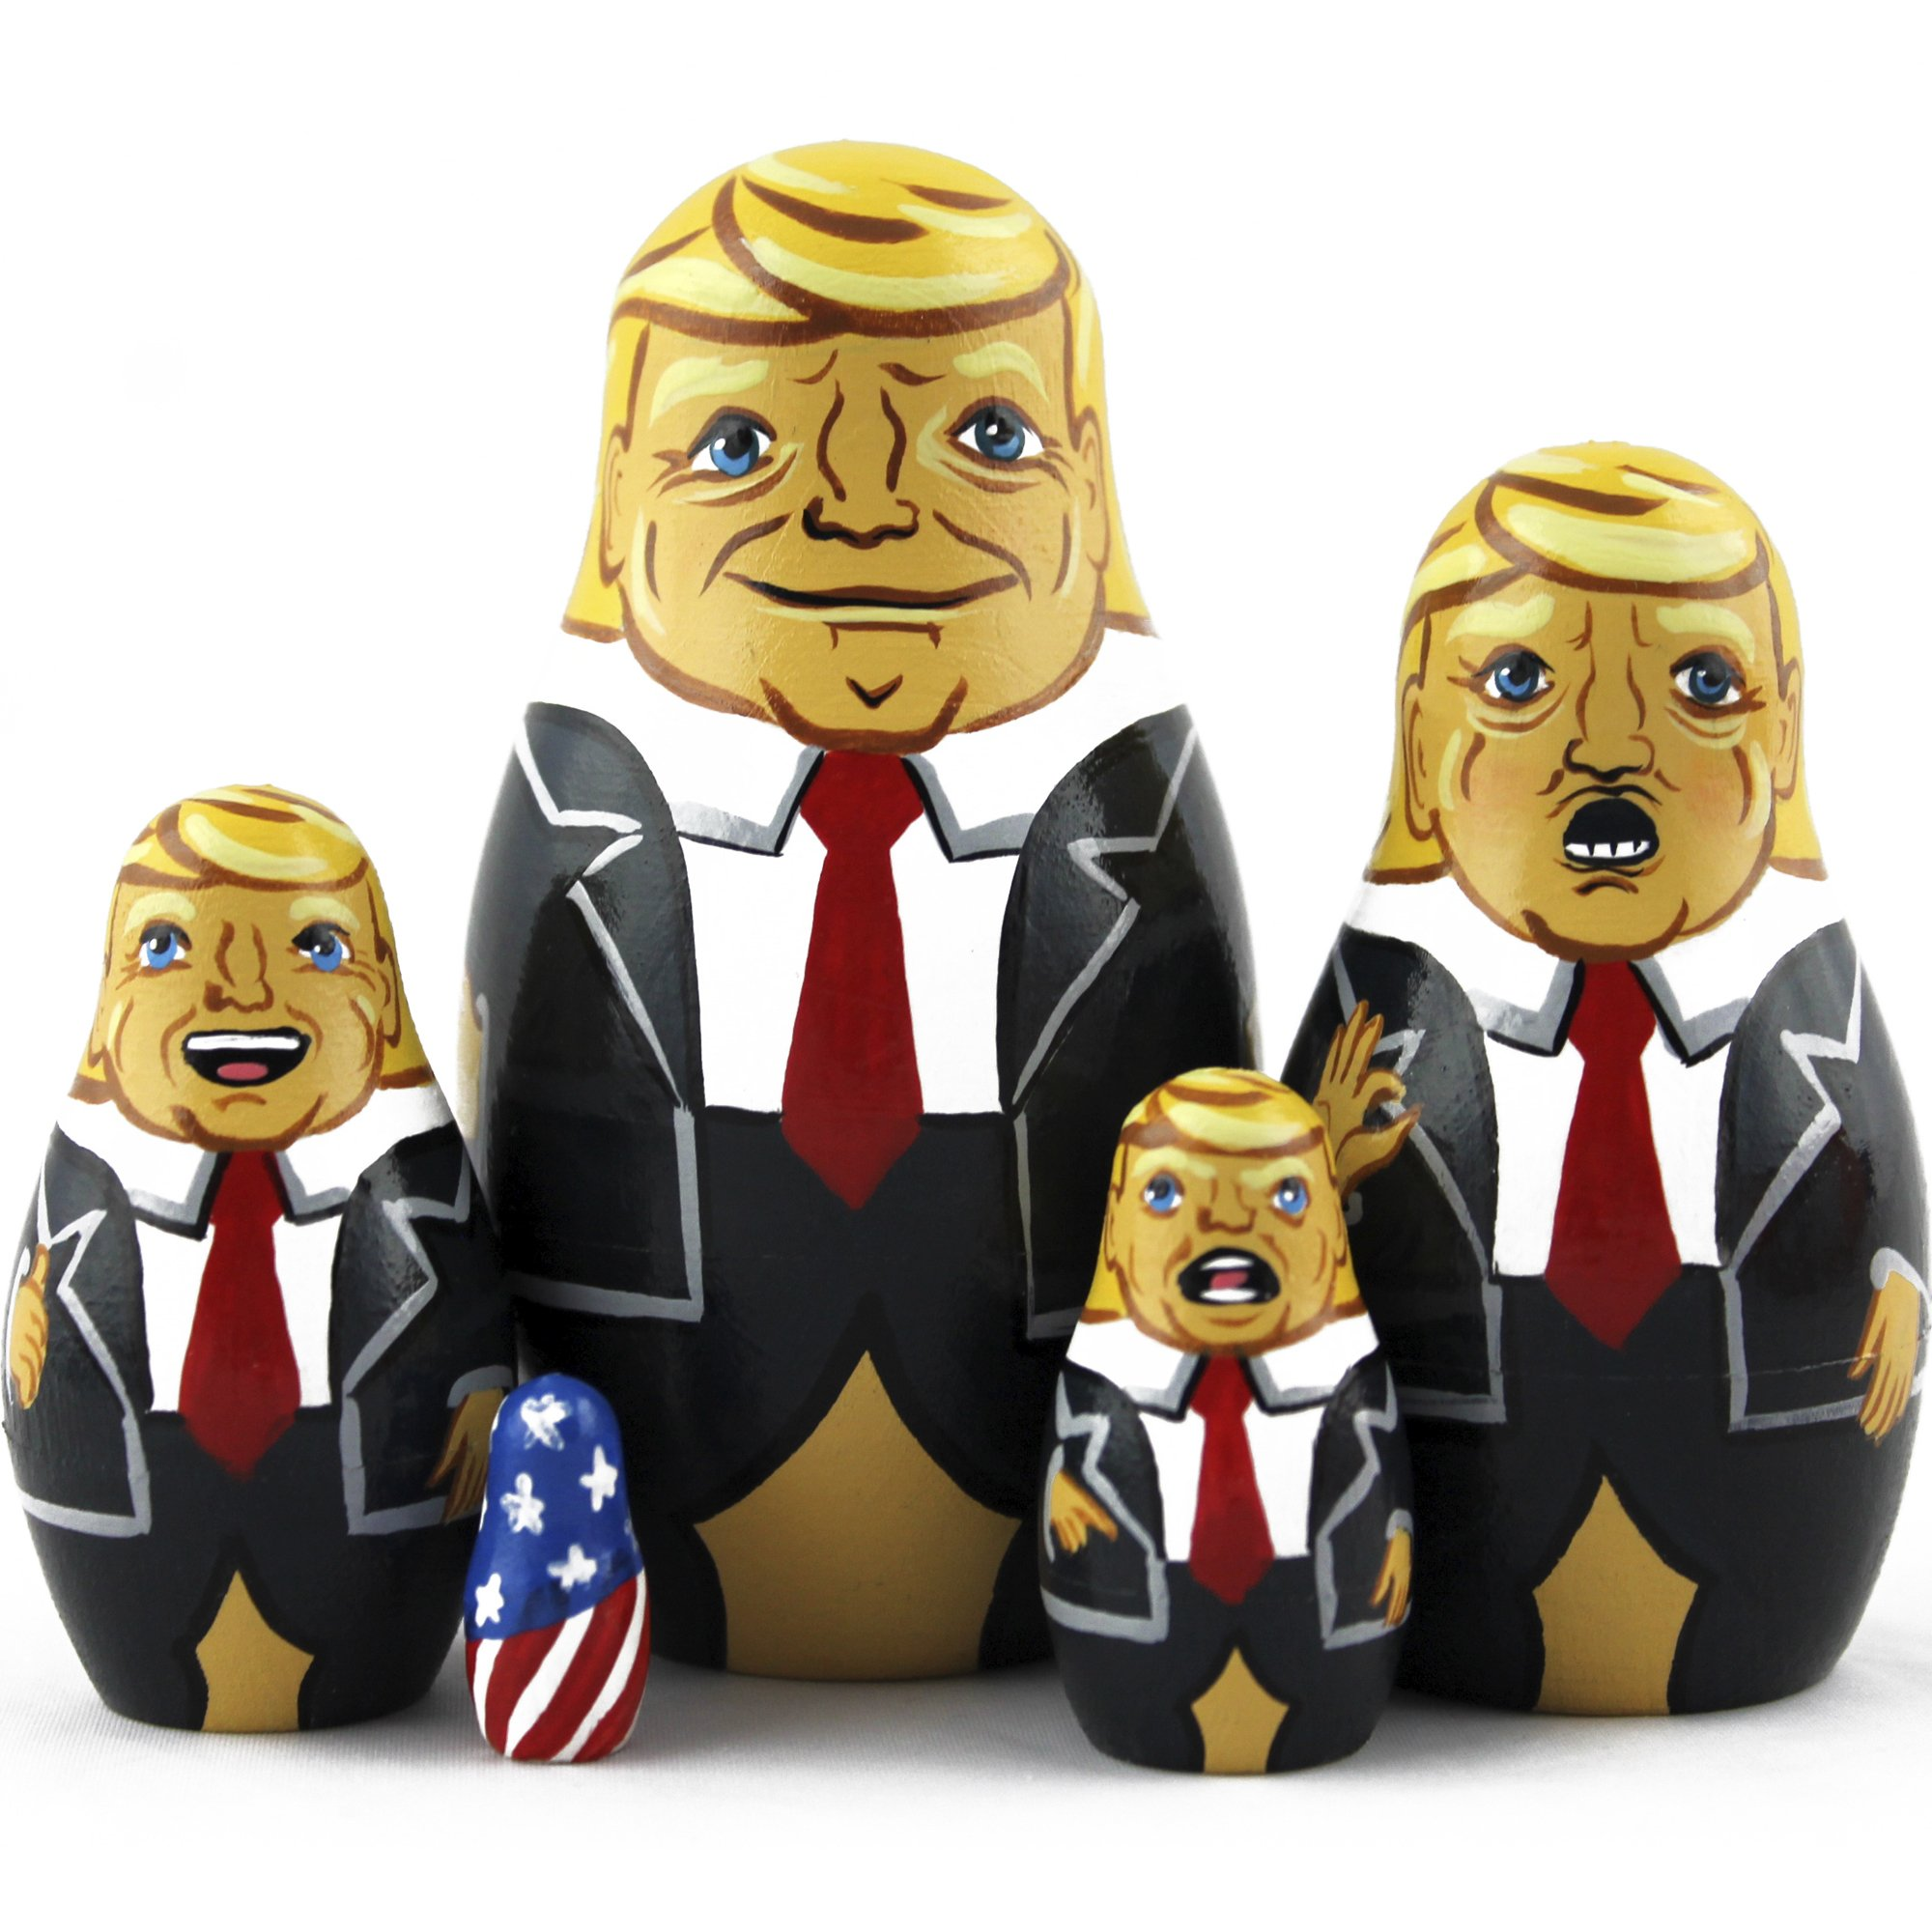 Donald Trump Gifts - Donald Trump Funny Toy Doll - Trump Nesting Dolls Gag Gifts - Set 5 pc 3.7 inches by MATRYOSHKA&HANDICRAFT